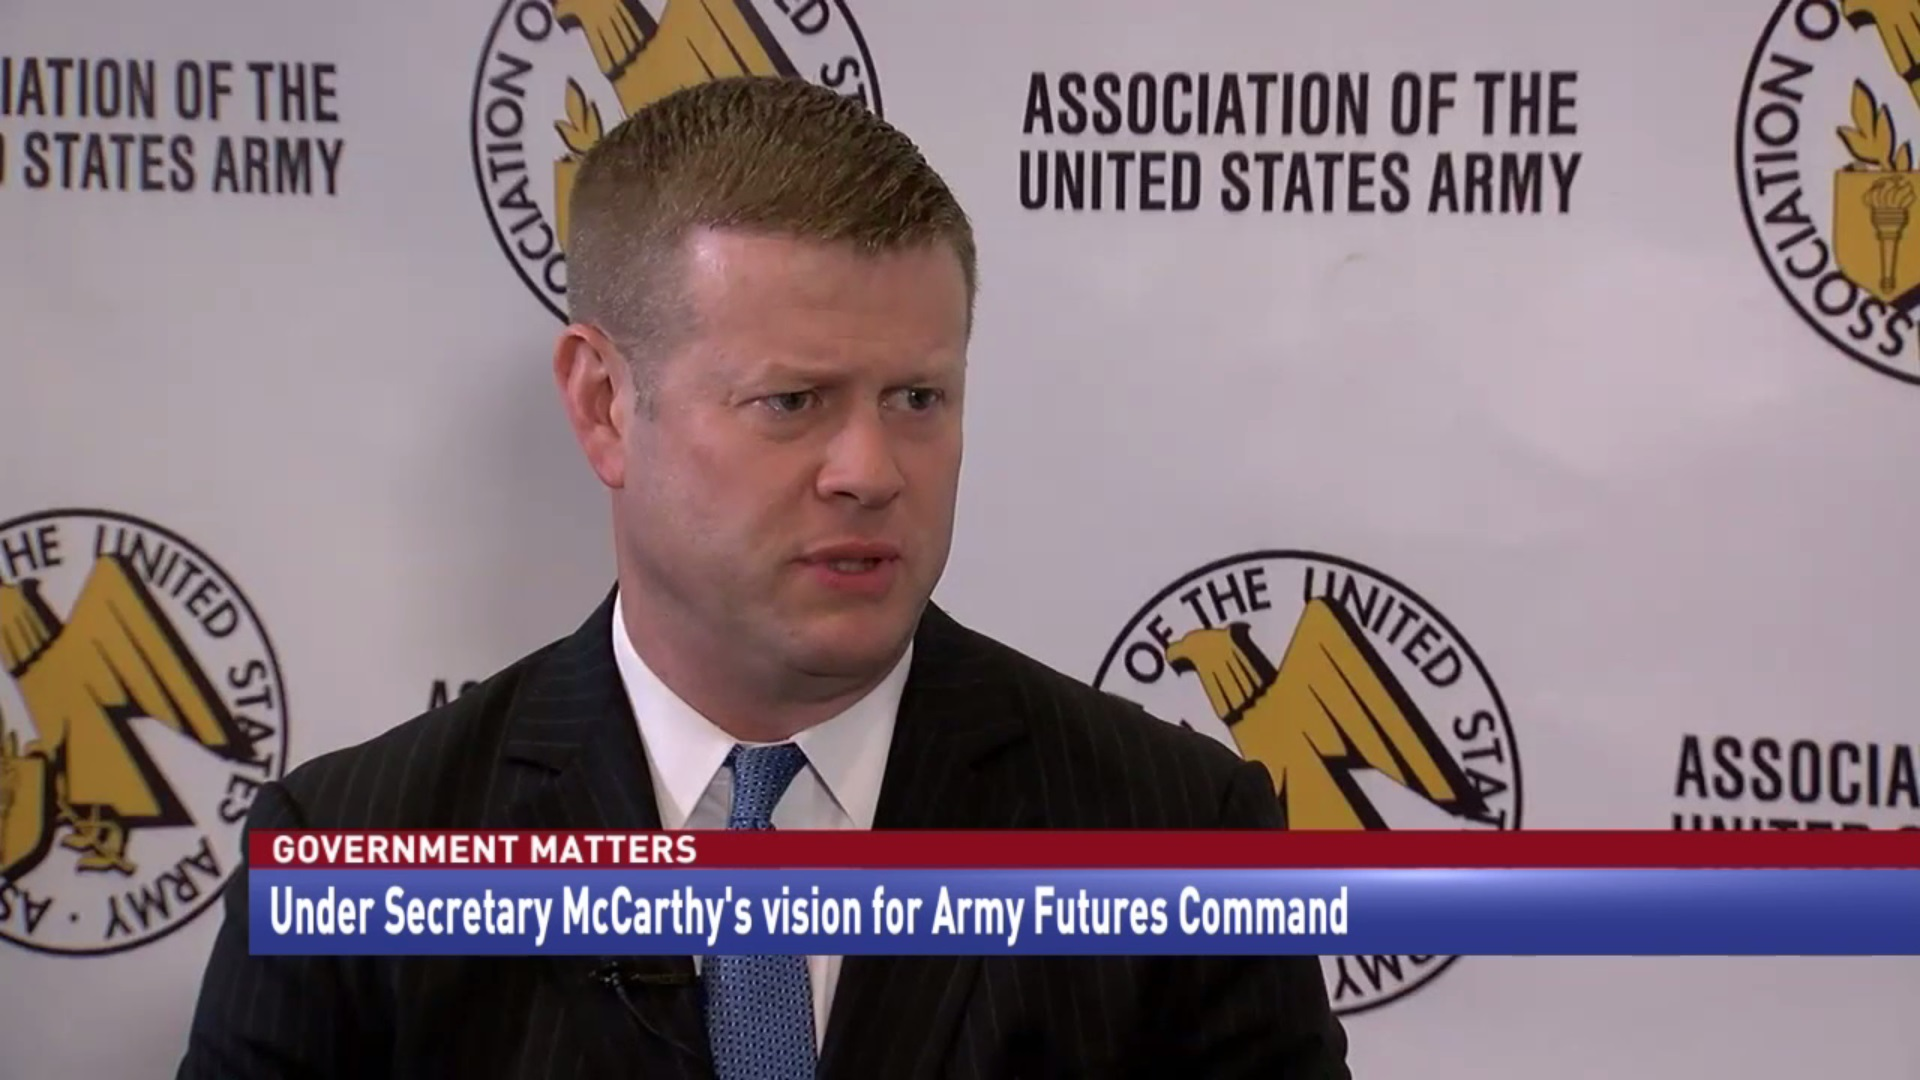 Under Secretary McCarthy's vision for Army Futures Command